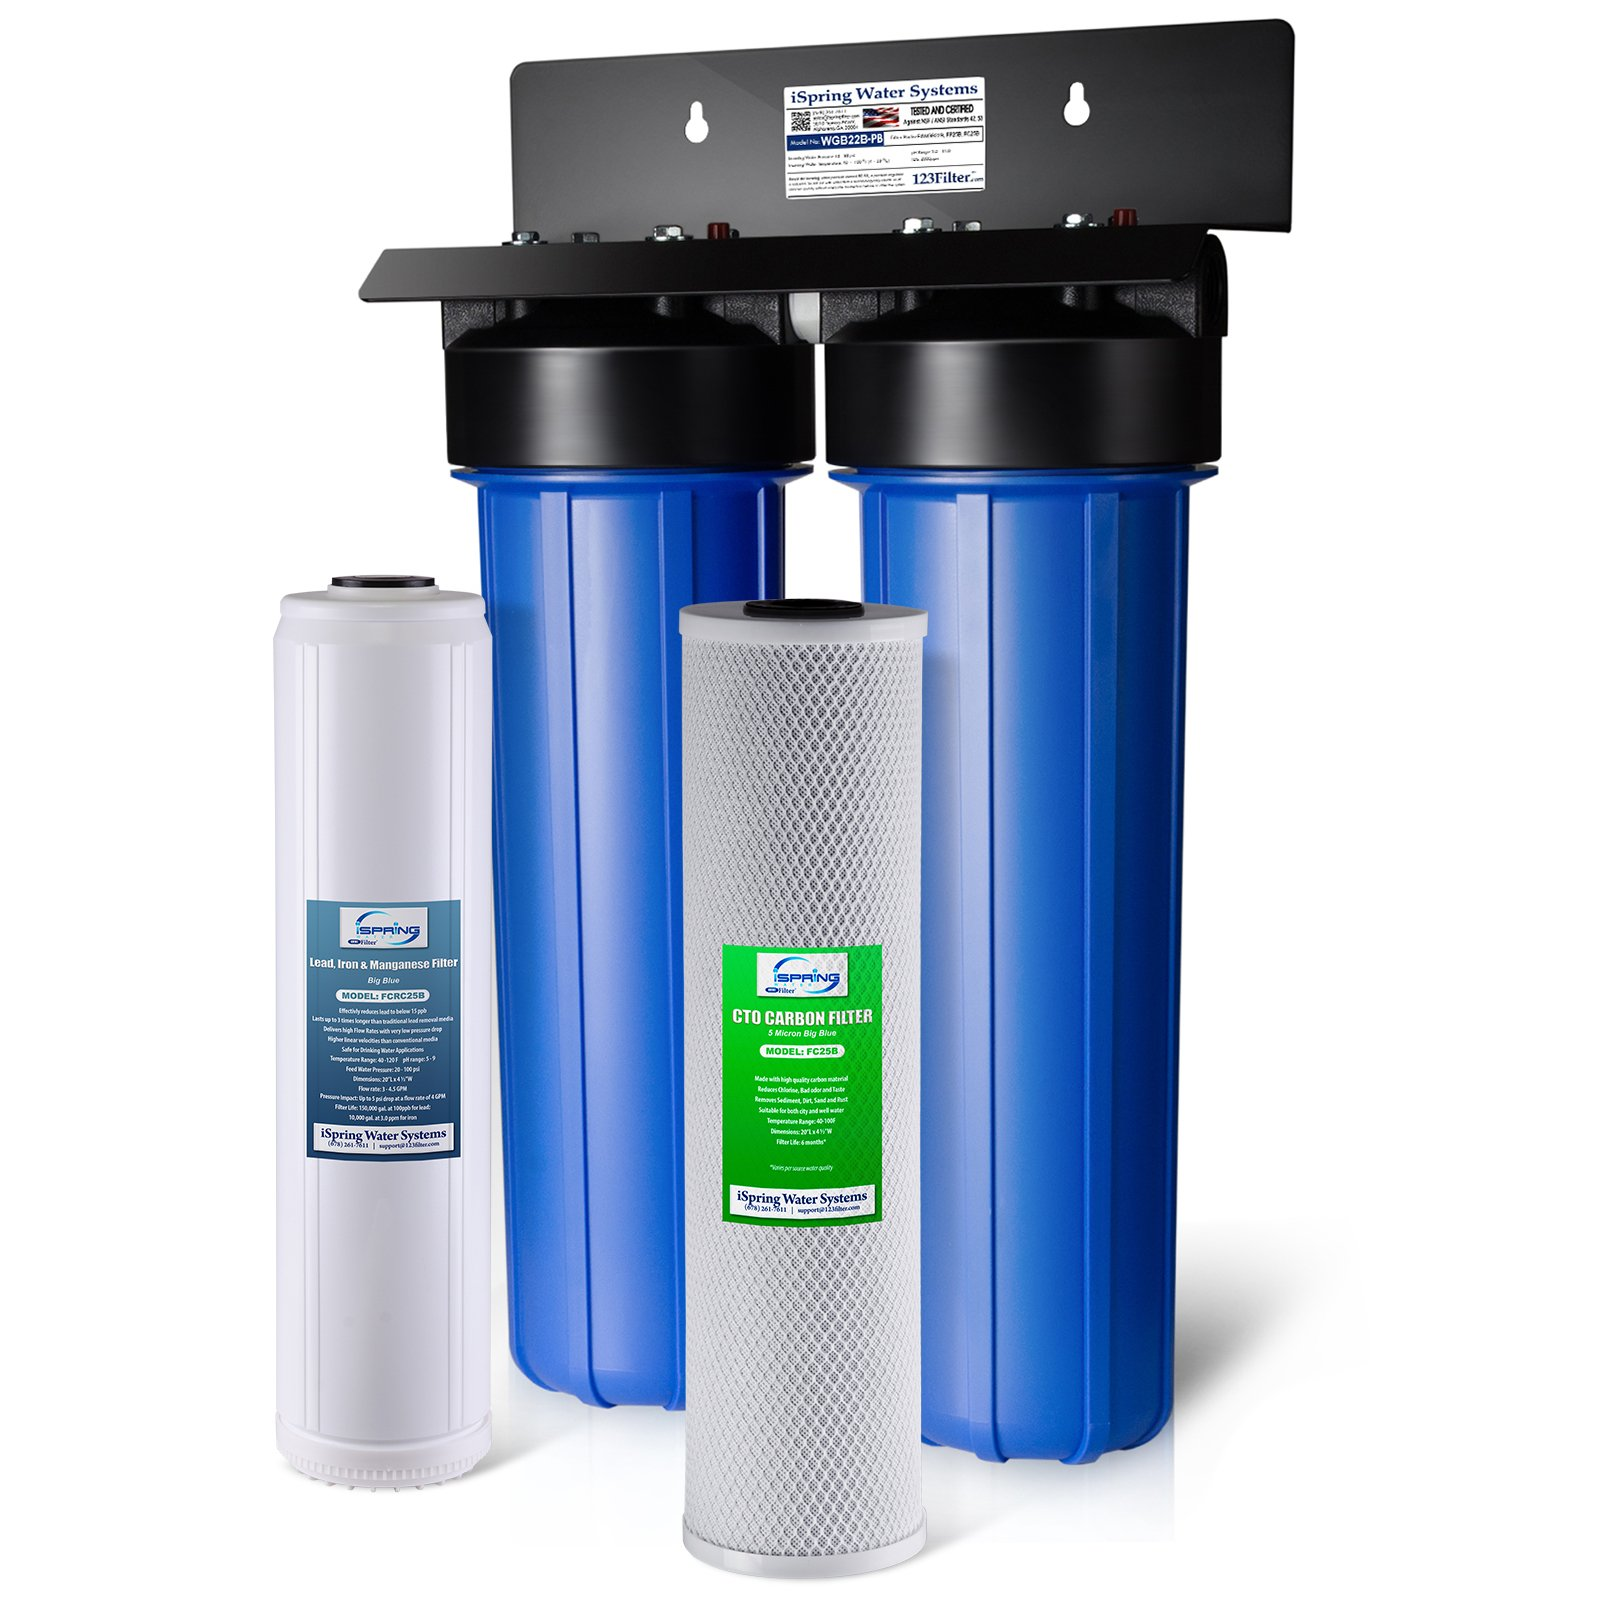 iSpring WGB22B-PB 2-Stage Whole House Water Filtration System w/ 20-Inch Carbon Block and Iron & Lead Reducing Filter